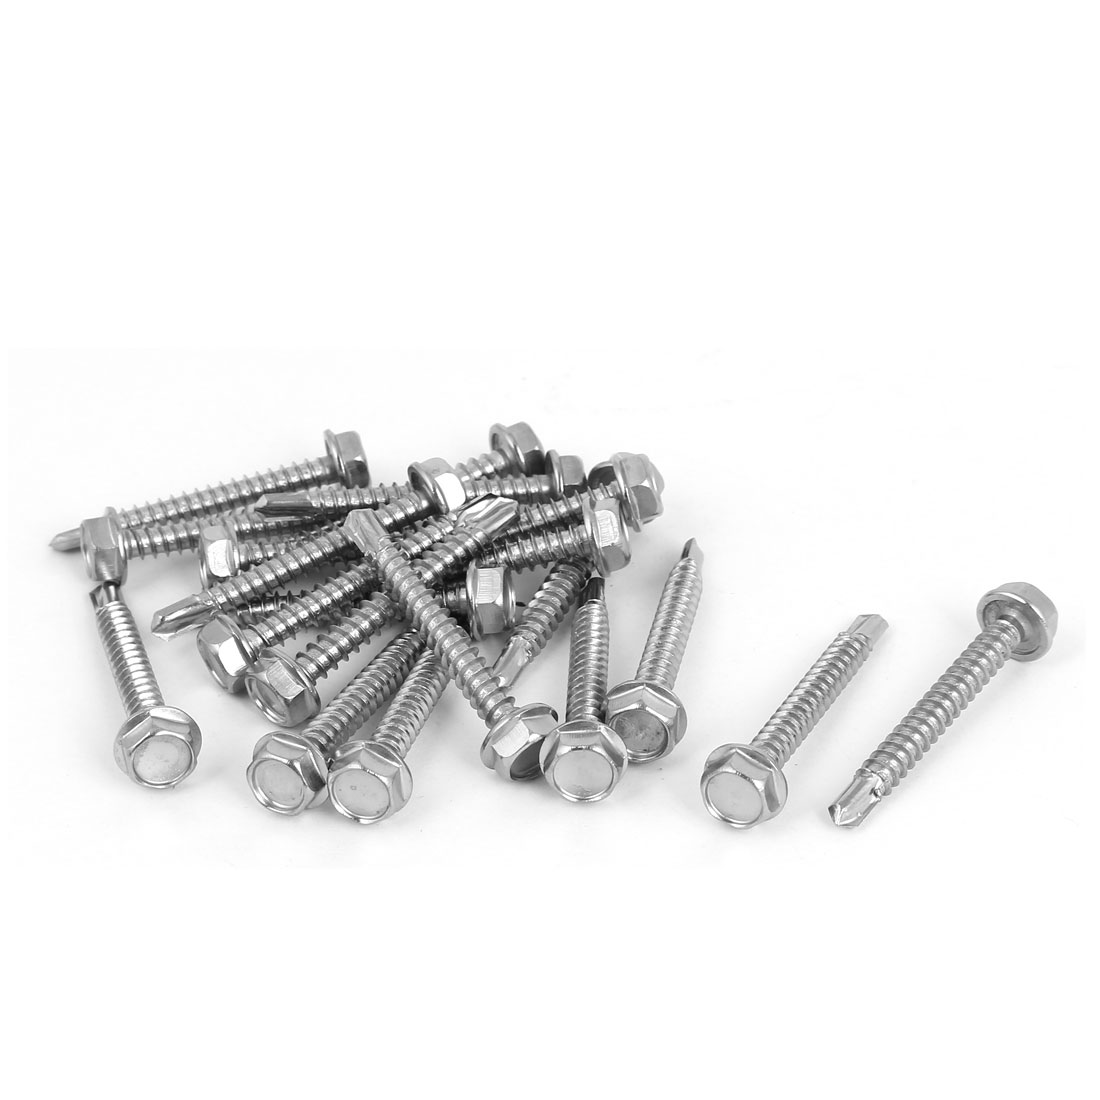 uxcell 25mm x 4mm Thread Diameter Stainless Steel Crosshead Self Tapping Screw 20Pcs